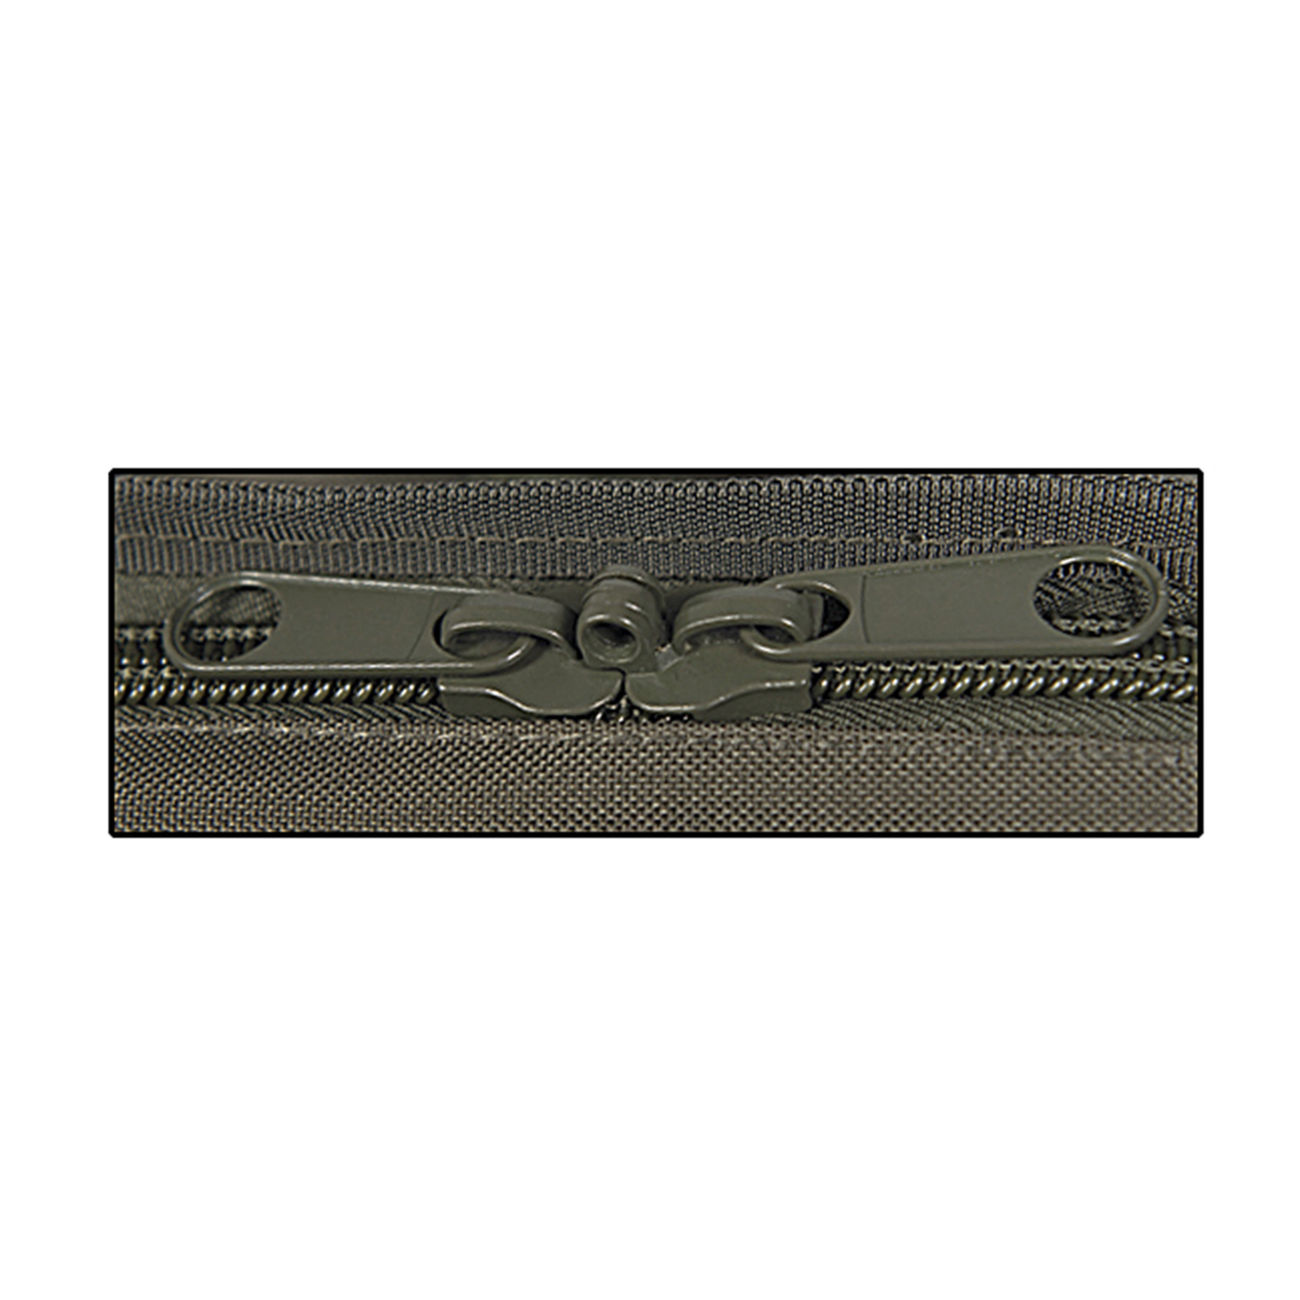 Mil-Tec Tactical Pistol Case Small oliv 2